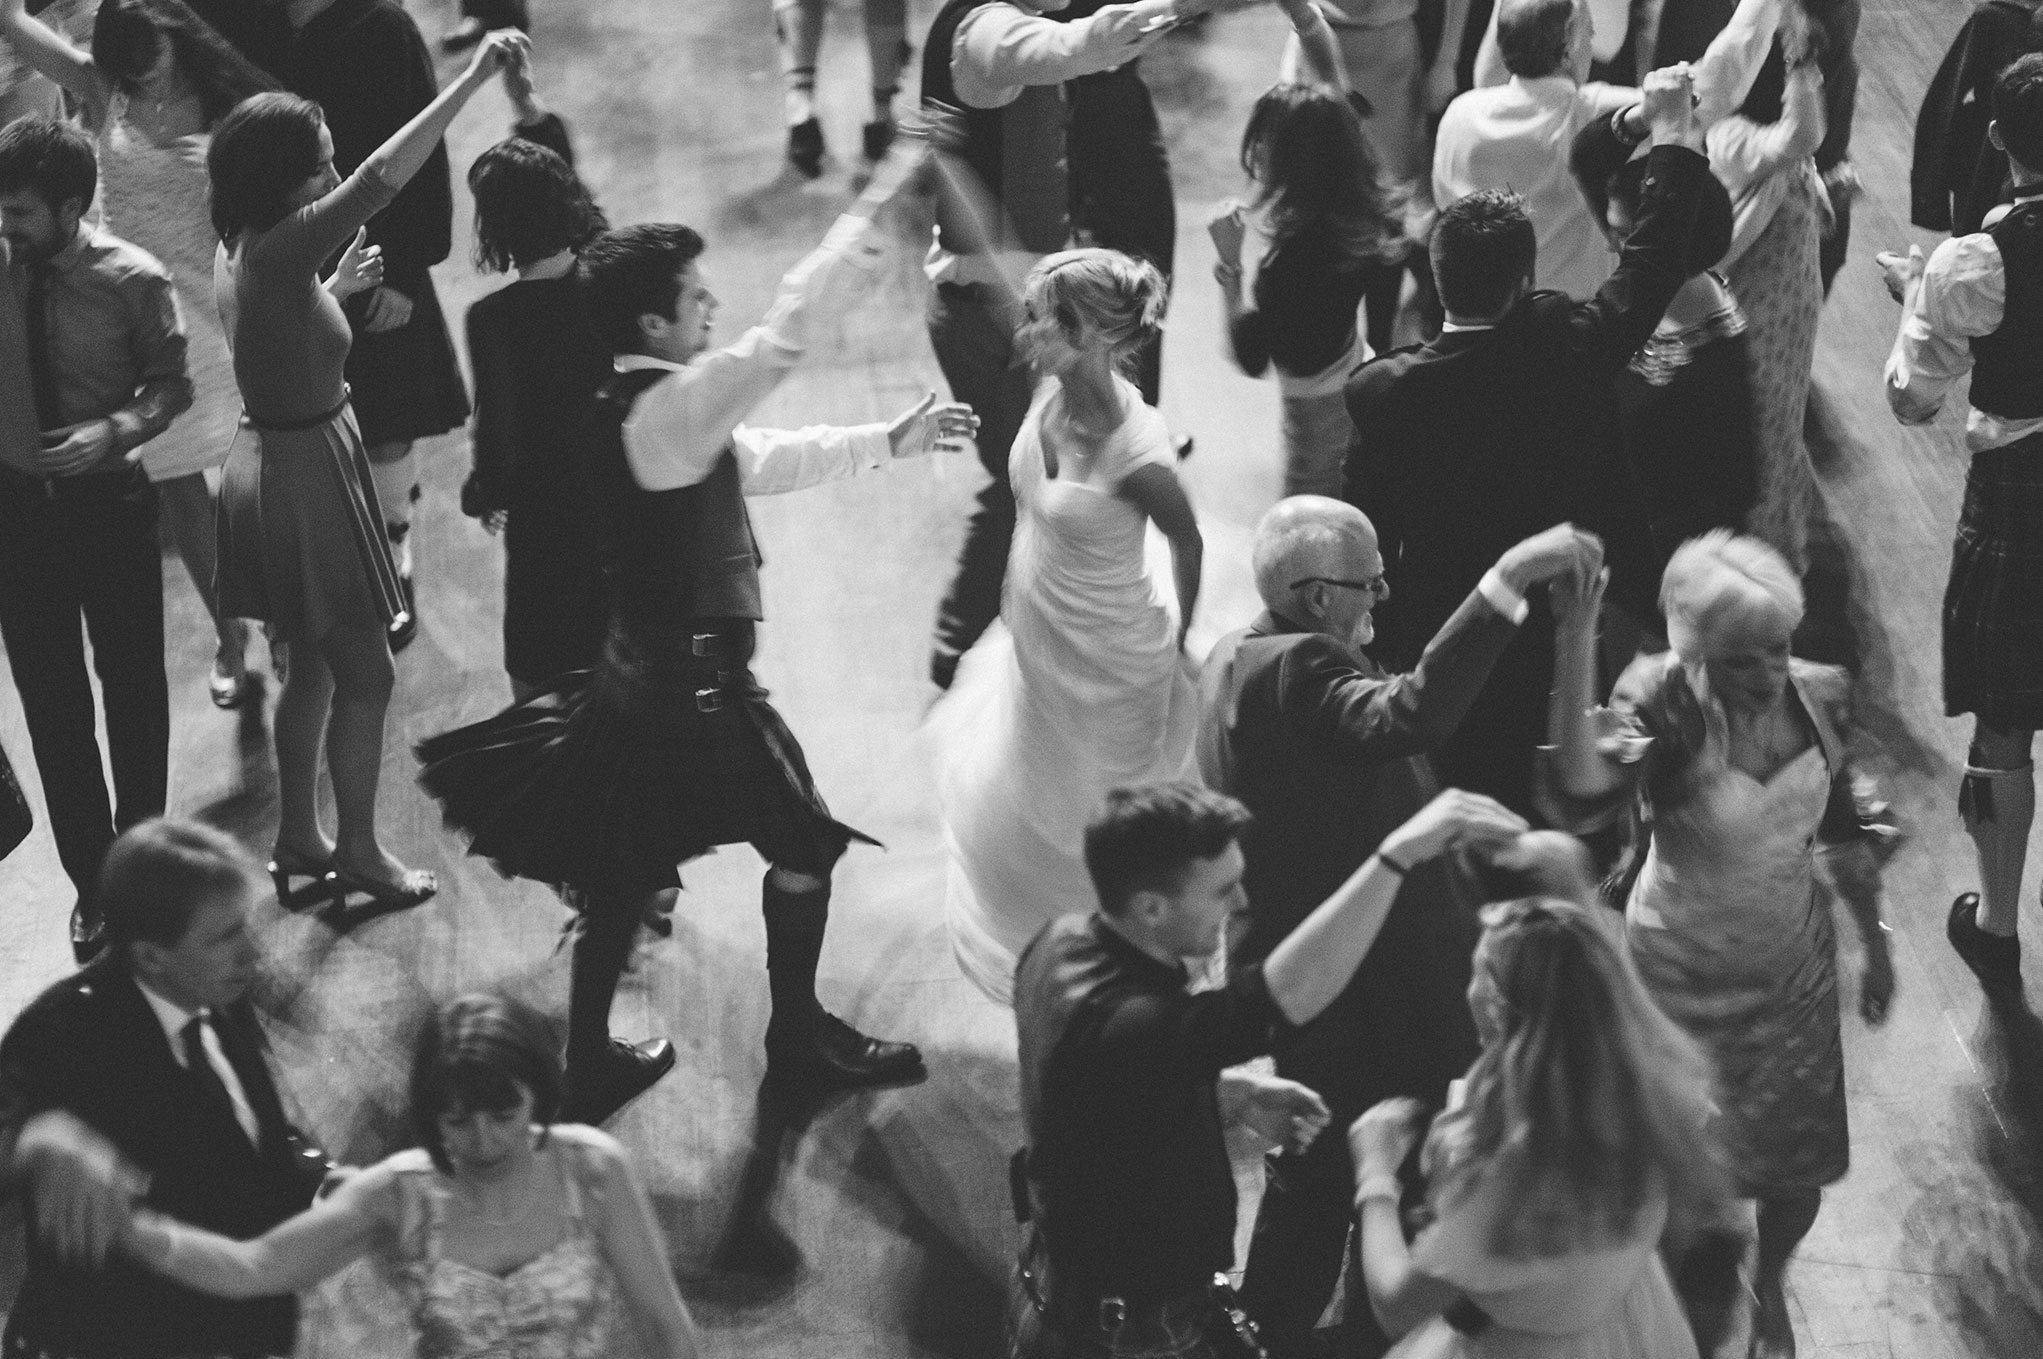 Ceilidh-Wedding-Glasgow.jpg